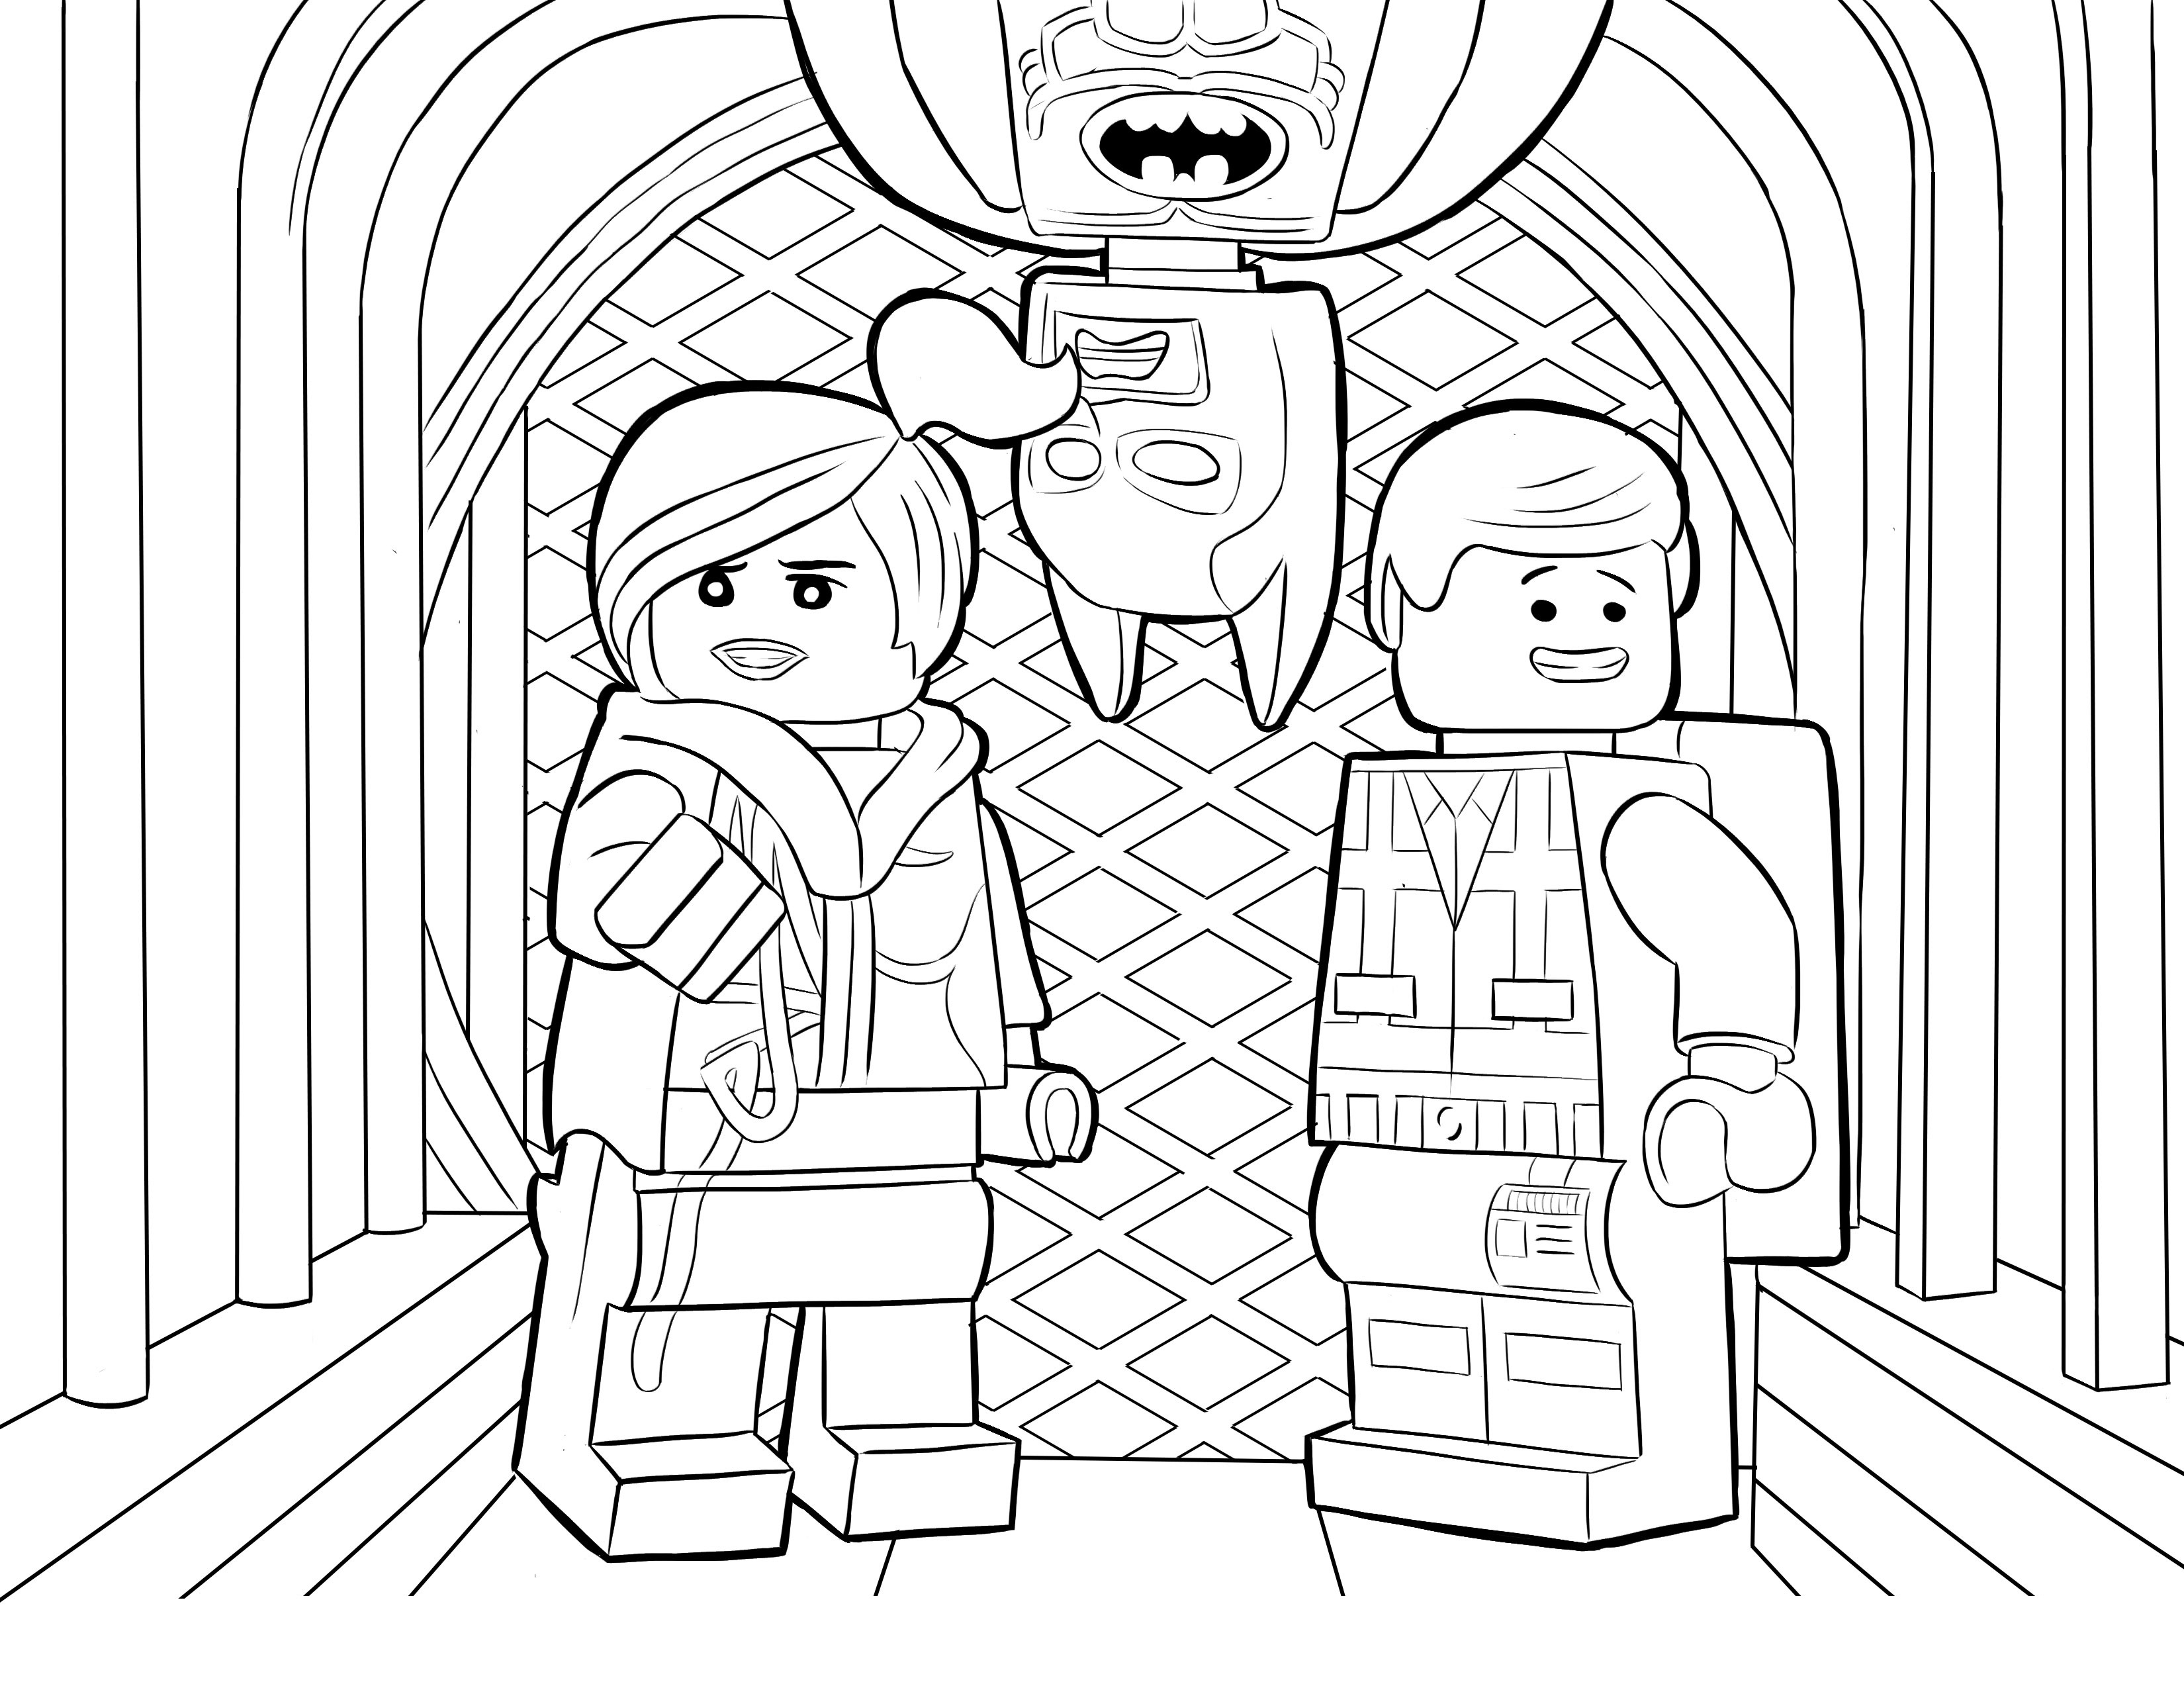 coloring pictures lego lego star wars coloring pages to download and print for free coloring pictures lego